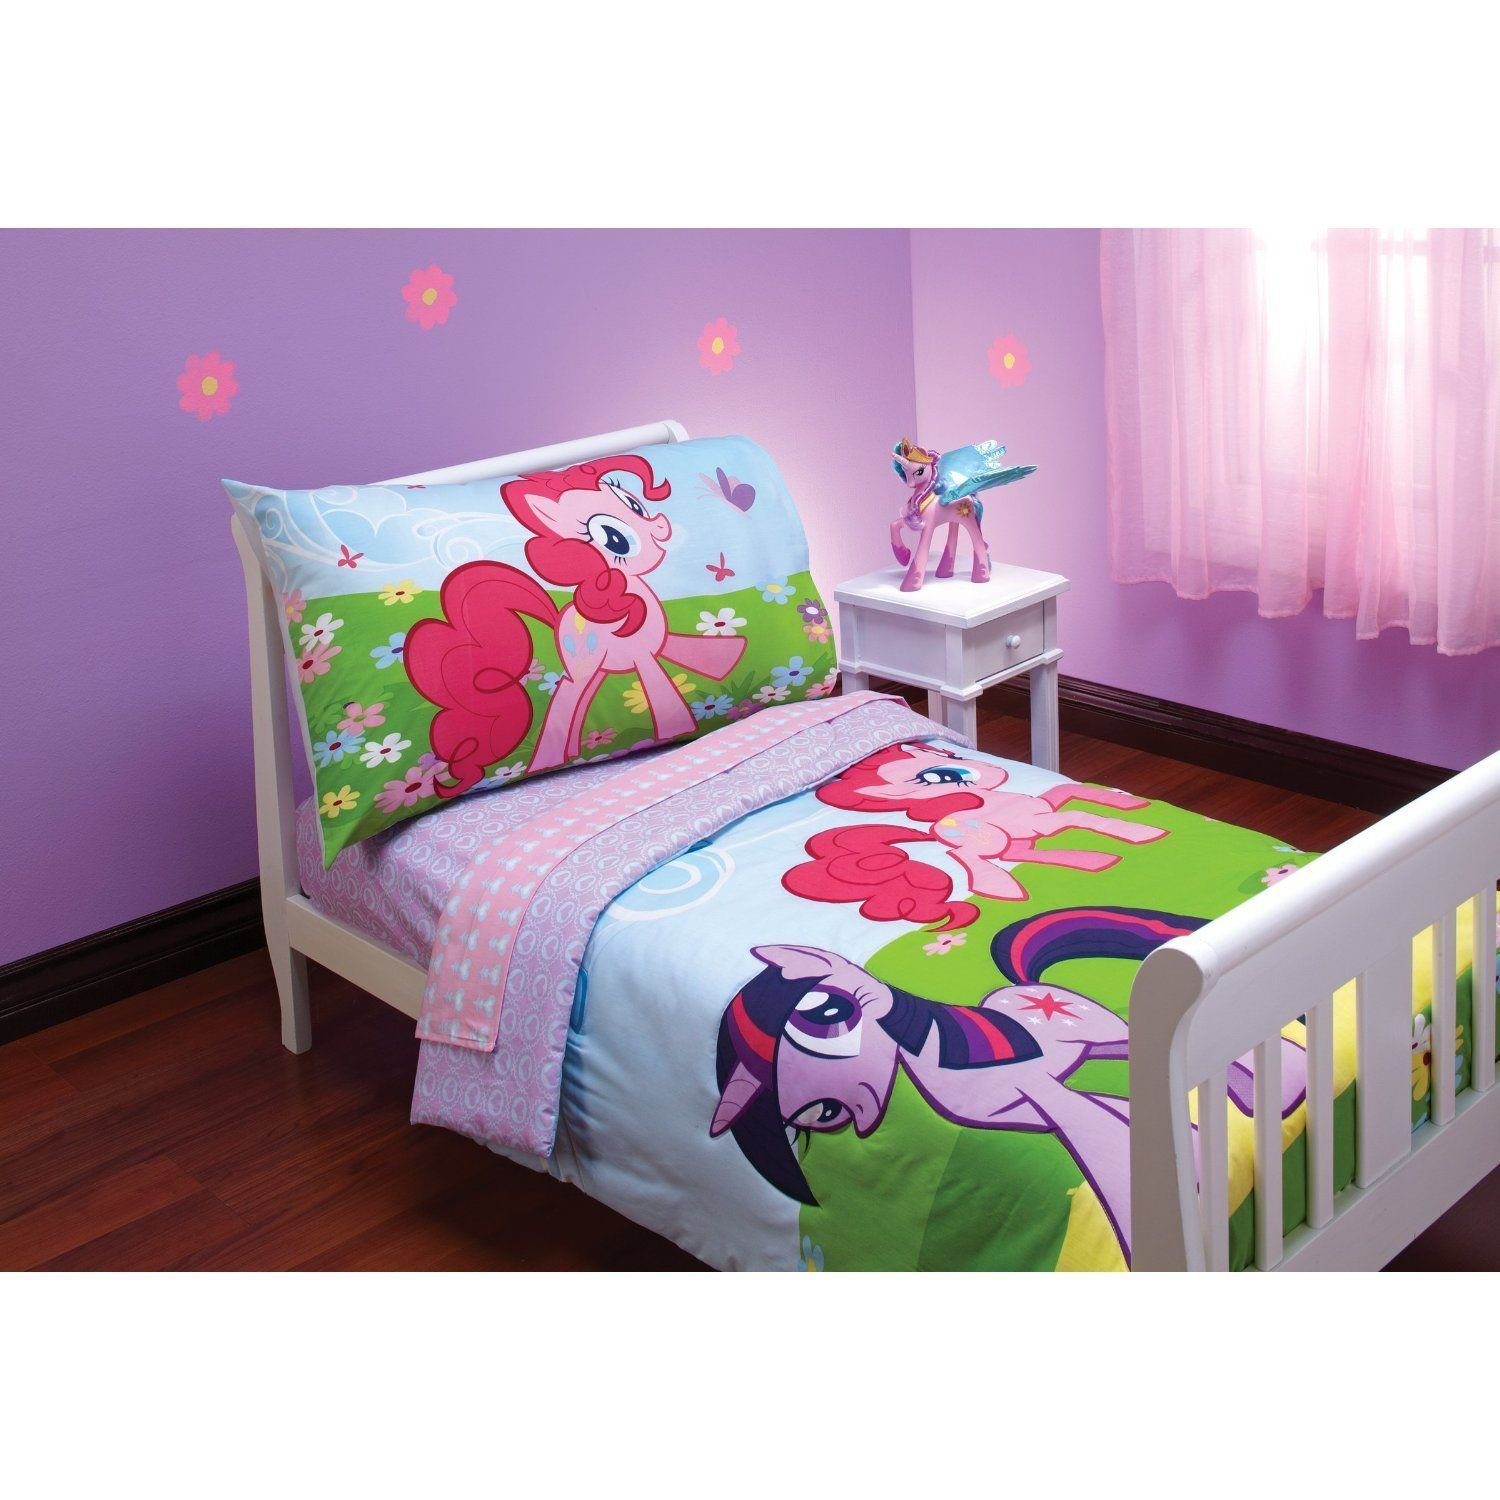 Best Mlp Rainbowdash Comforter My Little Pony Themed Bedding With Pictures